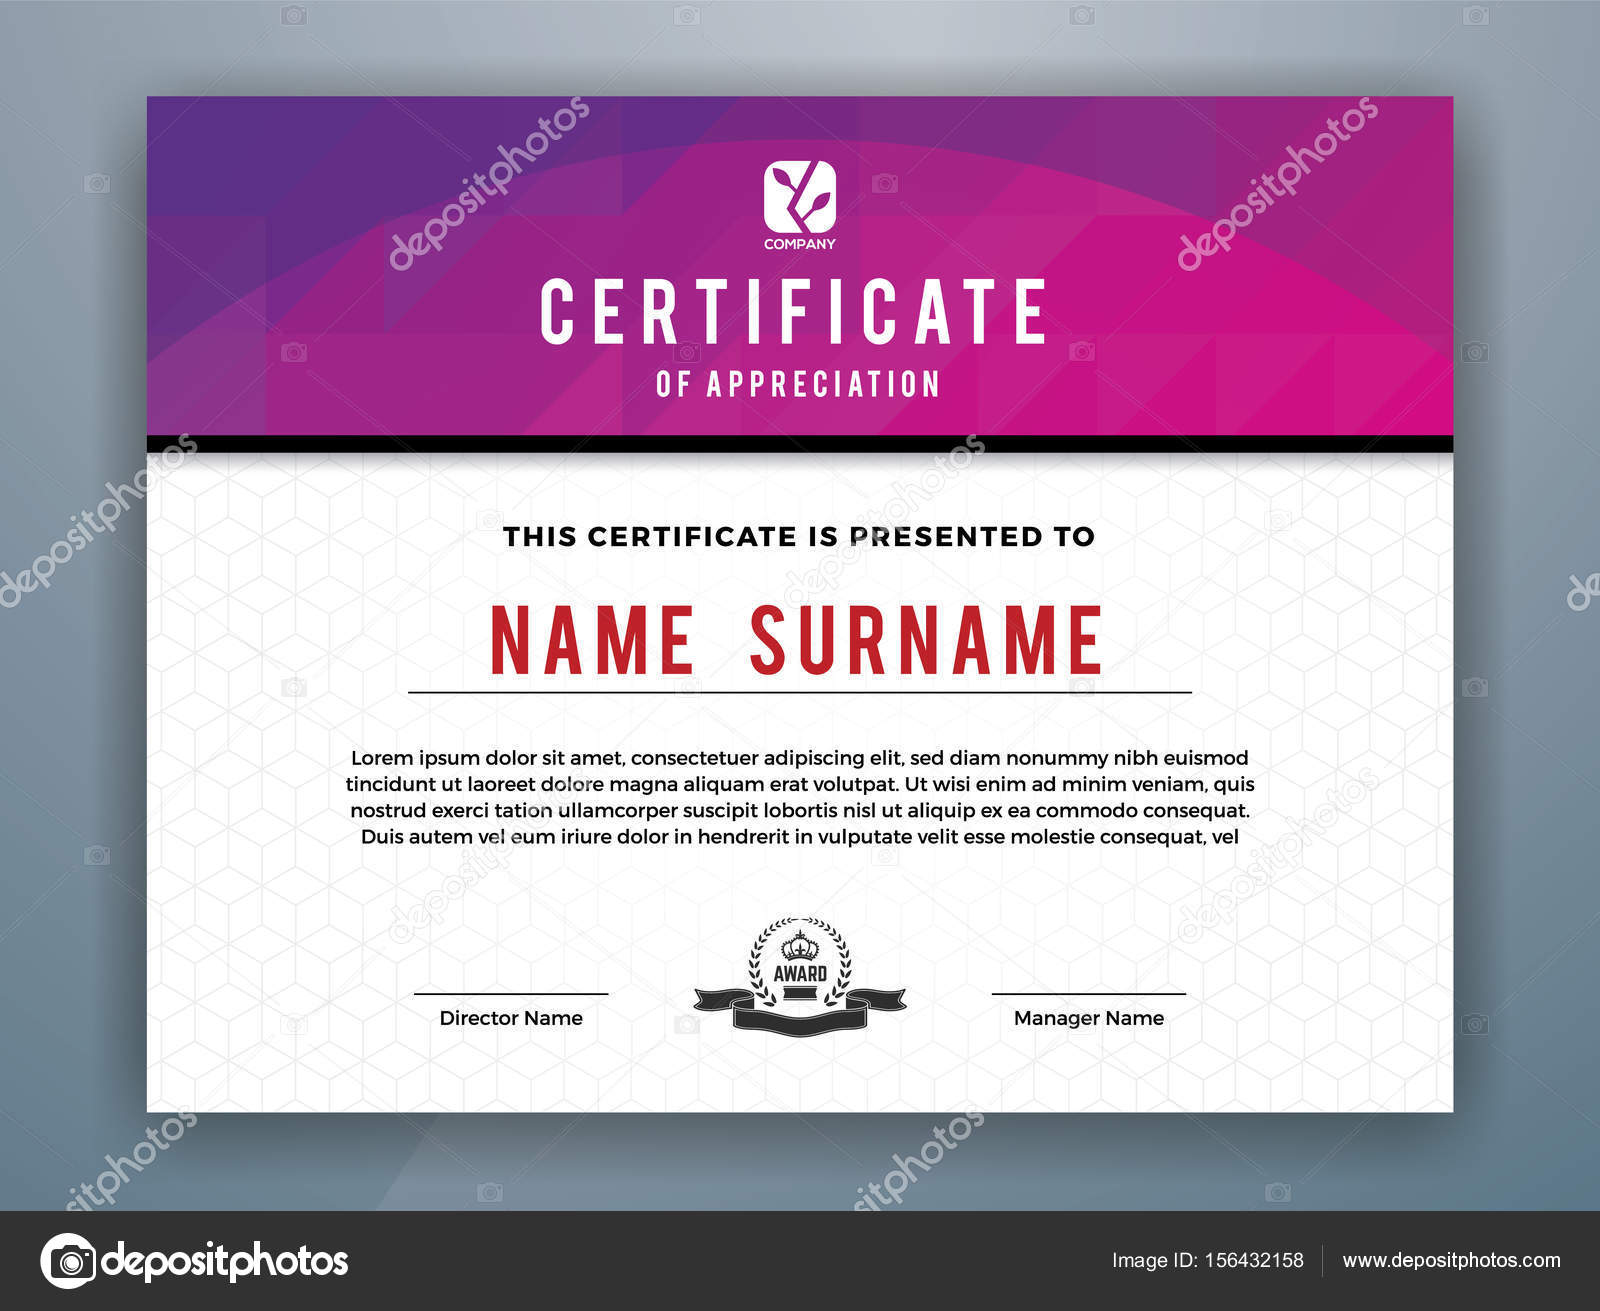 Top Result 50 Lovely Certificate Of Achievement Gallery 2018 Ojr7 ...